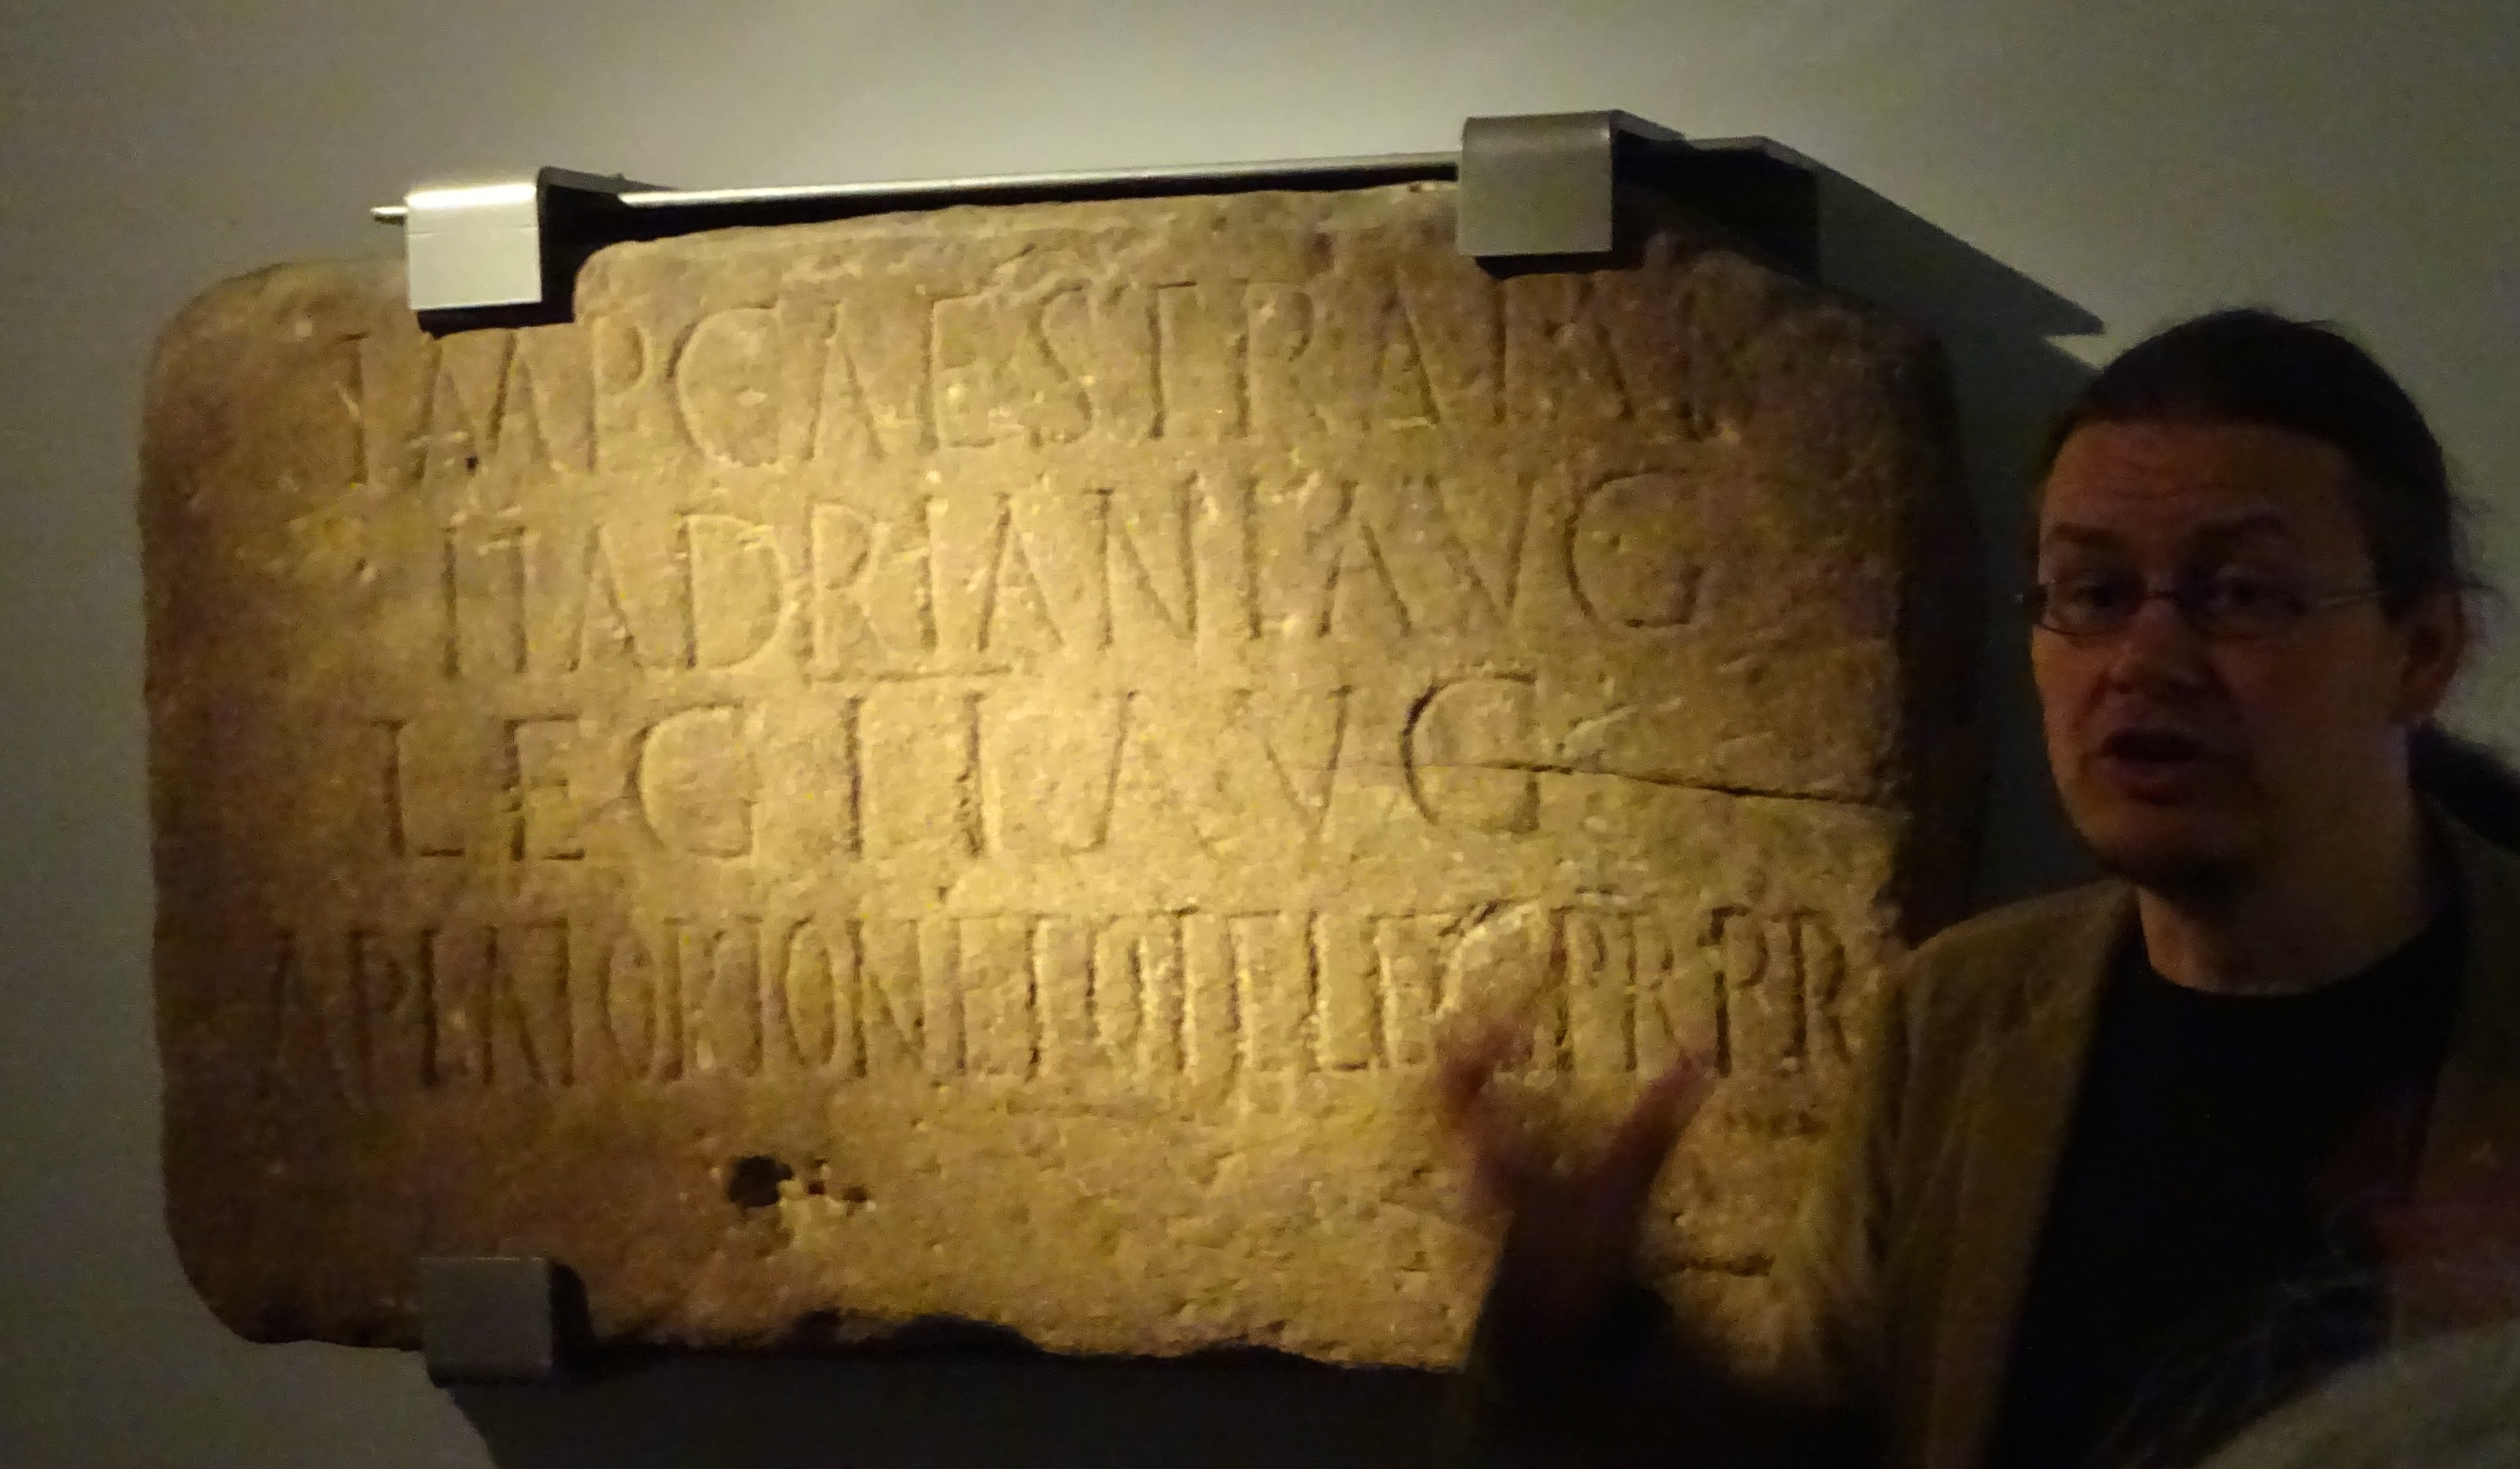 Milecastle 38 Inscription, Great North Museum